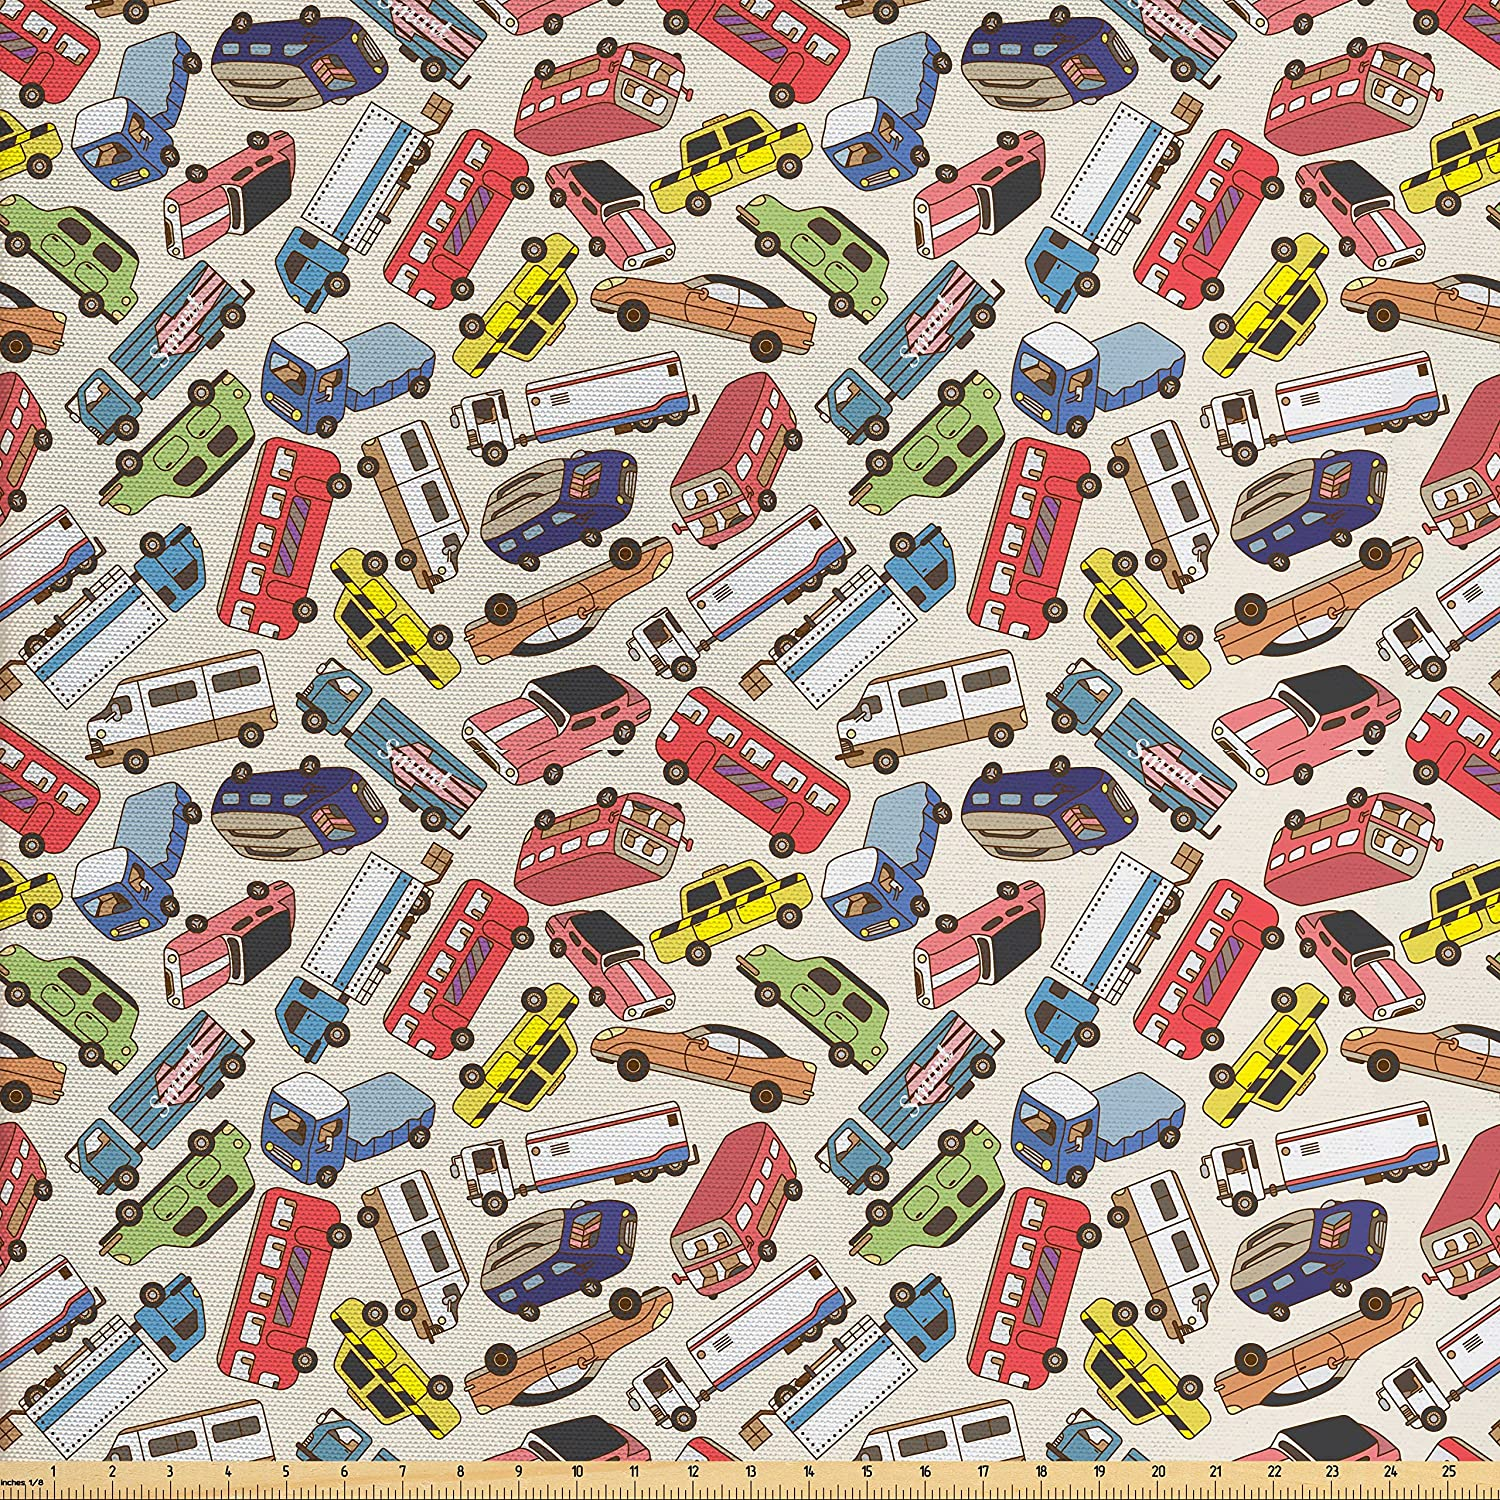 Ambesonne Cars Fabric by The Yard, Transport and Logistics Theme with Lorry Cargo Truck Muscle Car and Taxi Boy Toys, Decorative Fabric for Upholstery and Home Accents, Multicolor